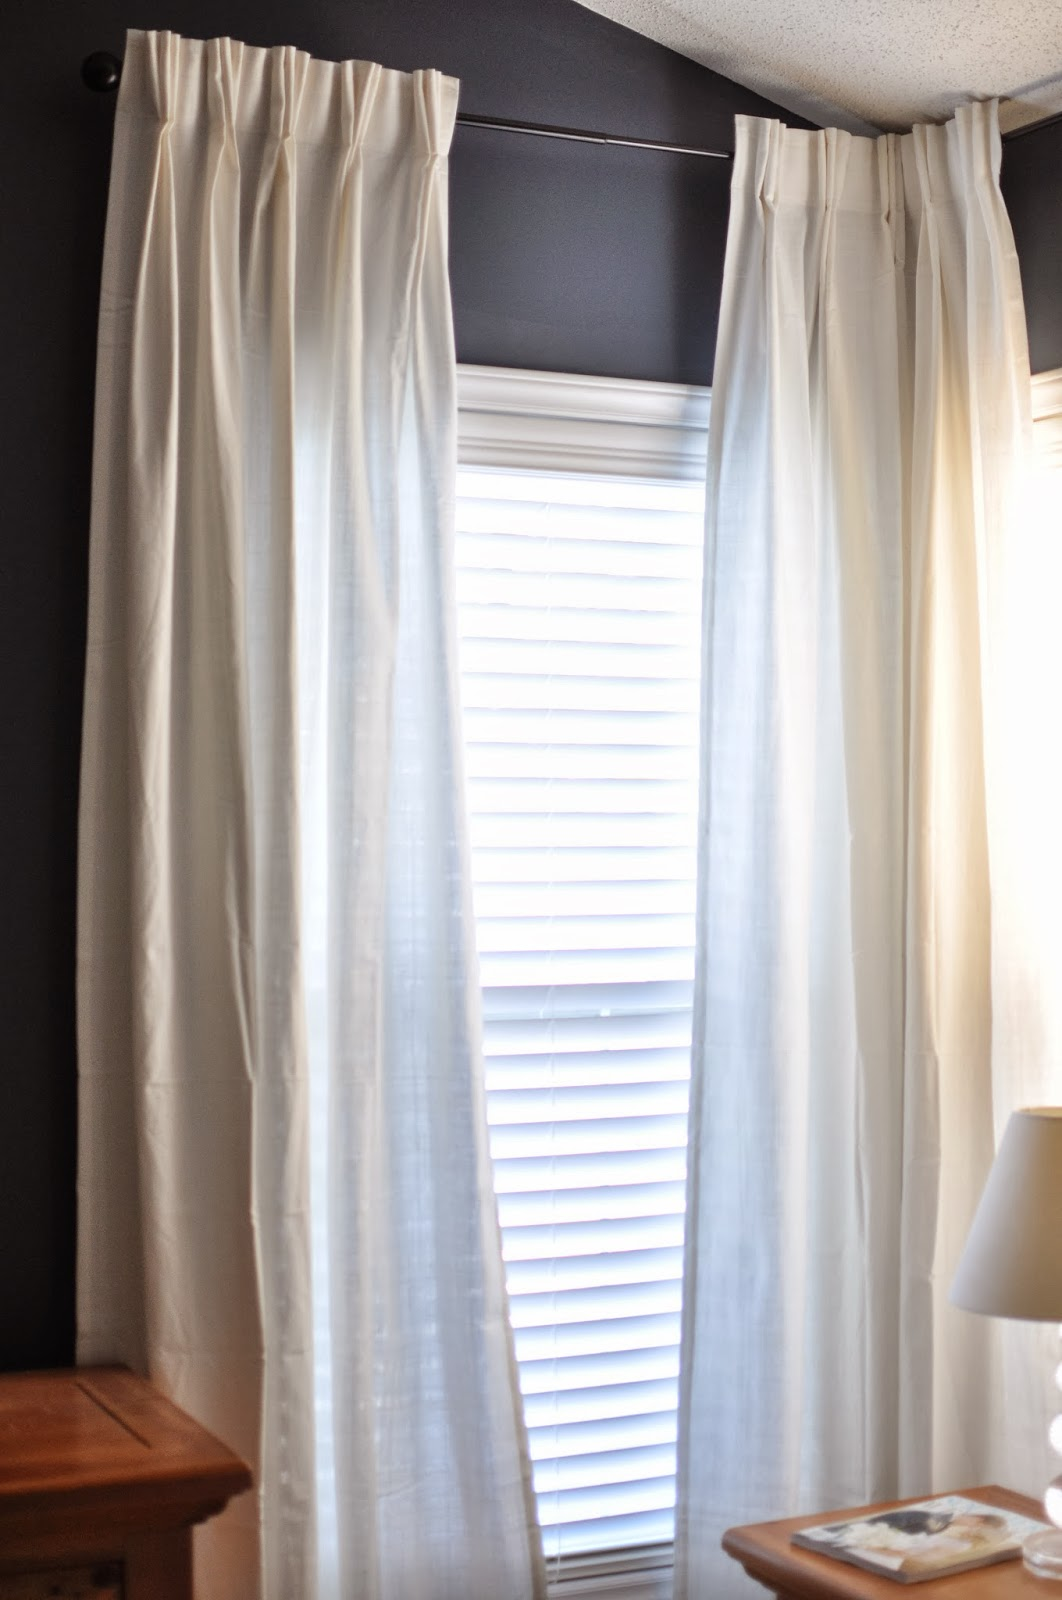 How To Make Pinch Pleat Curtains Without Tape Www